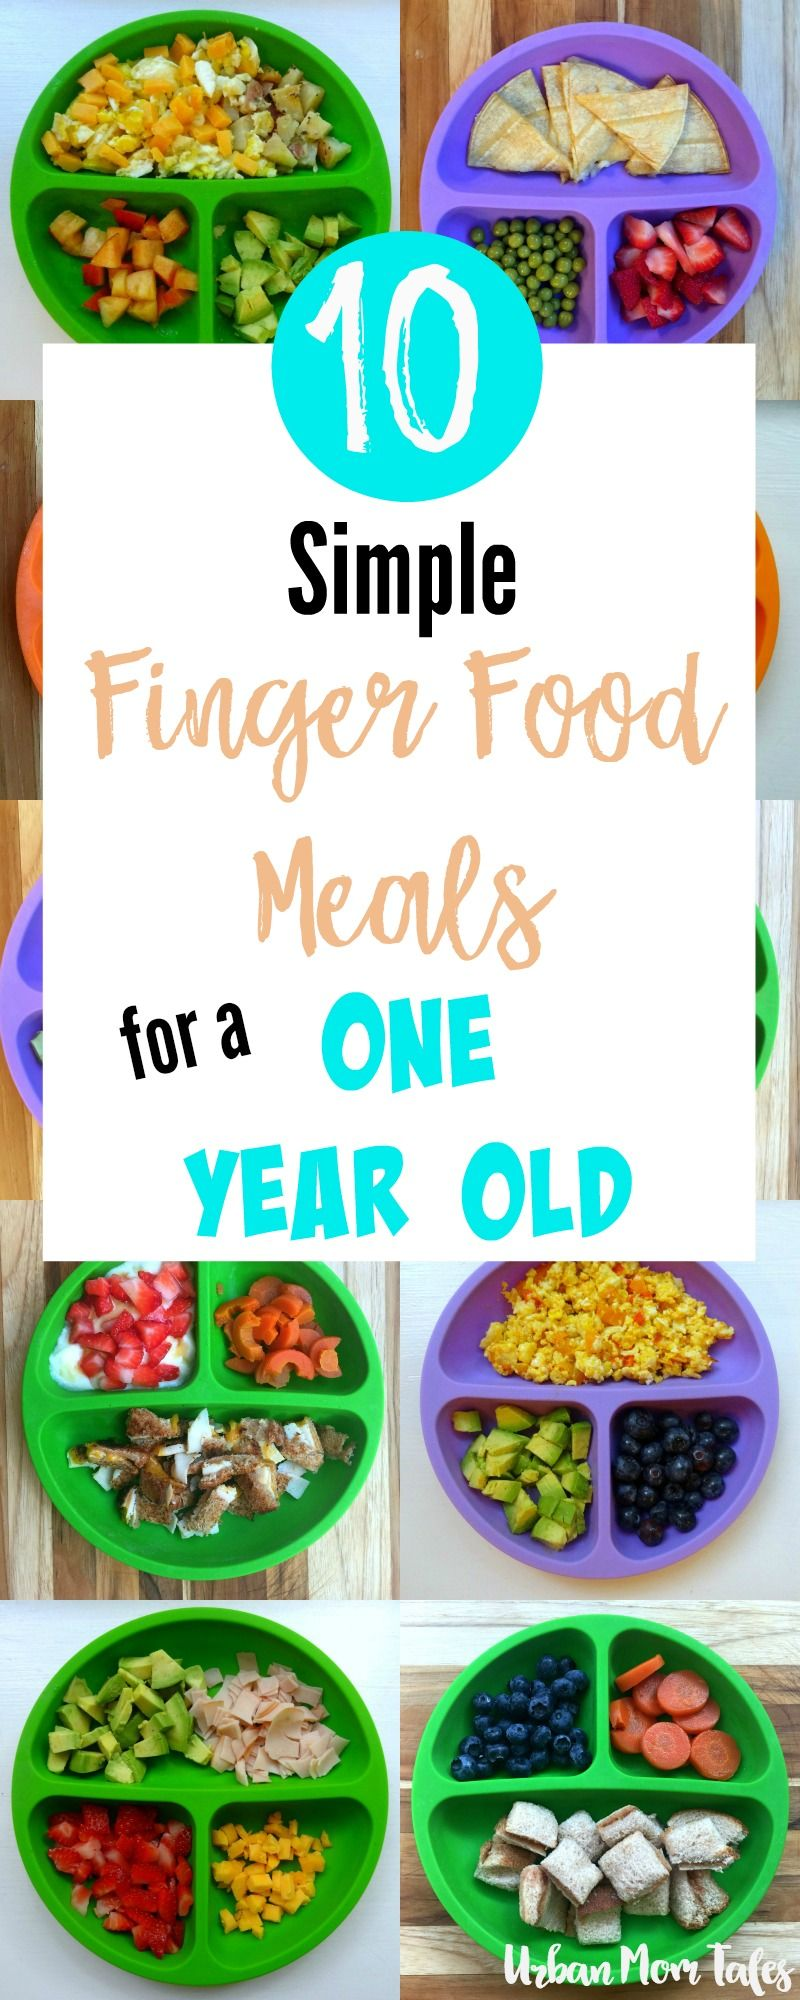 best diet for a one year old baby